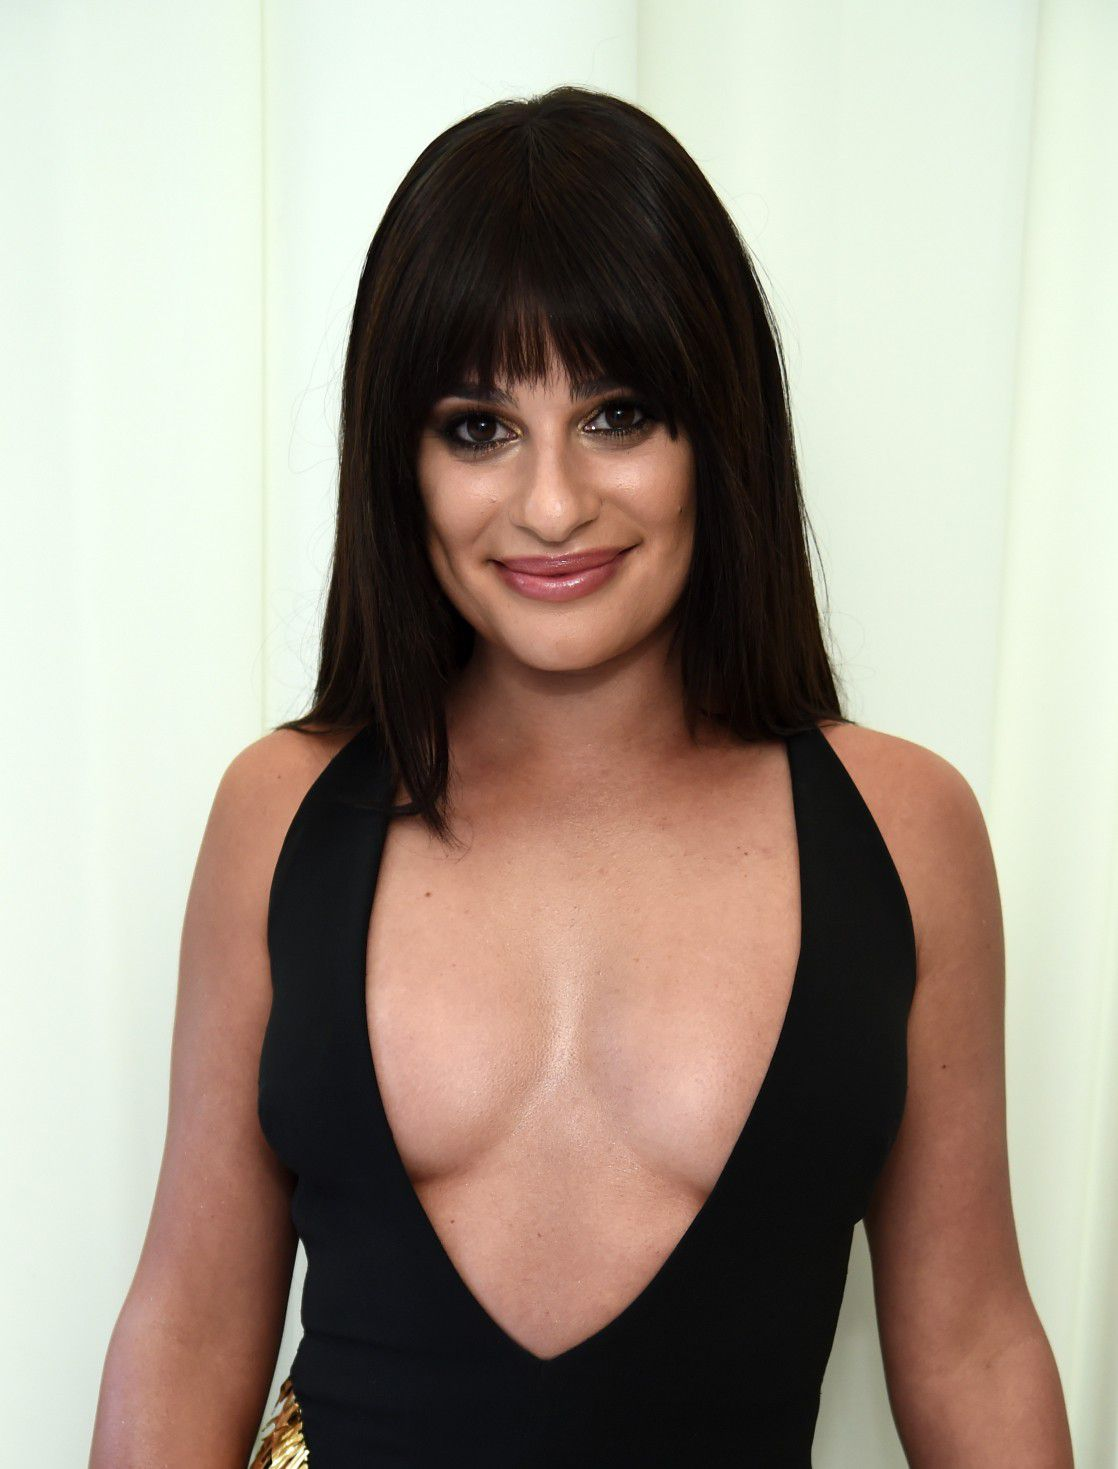 lea-michele-nip-slip-and-cleavage-at-elton-johns-aids-foundation-oscars-viewing-party-6593